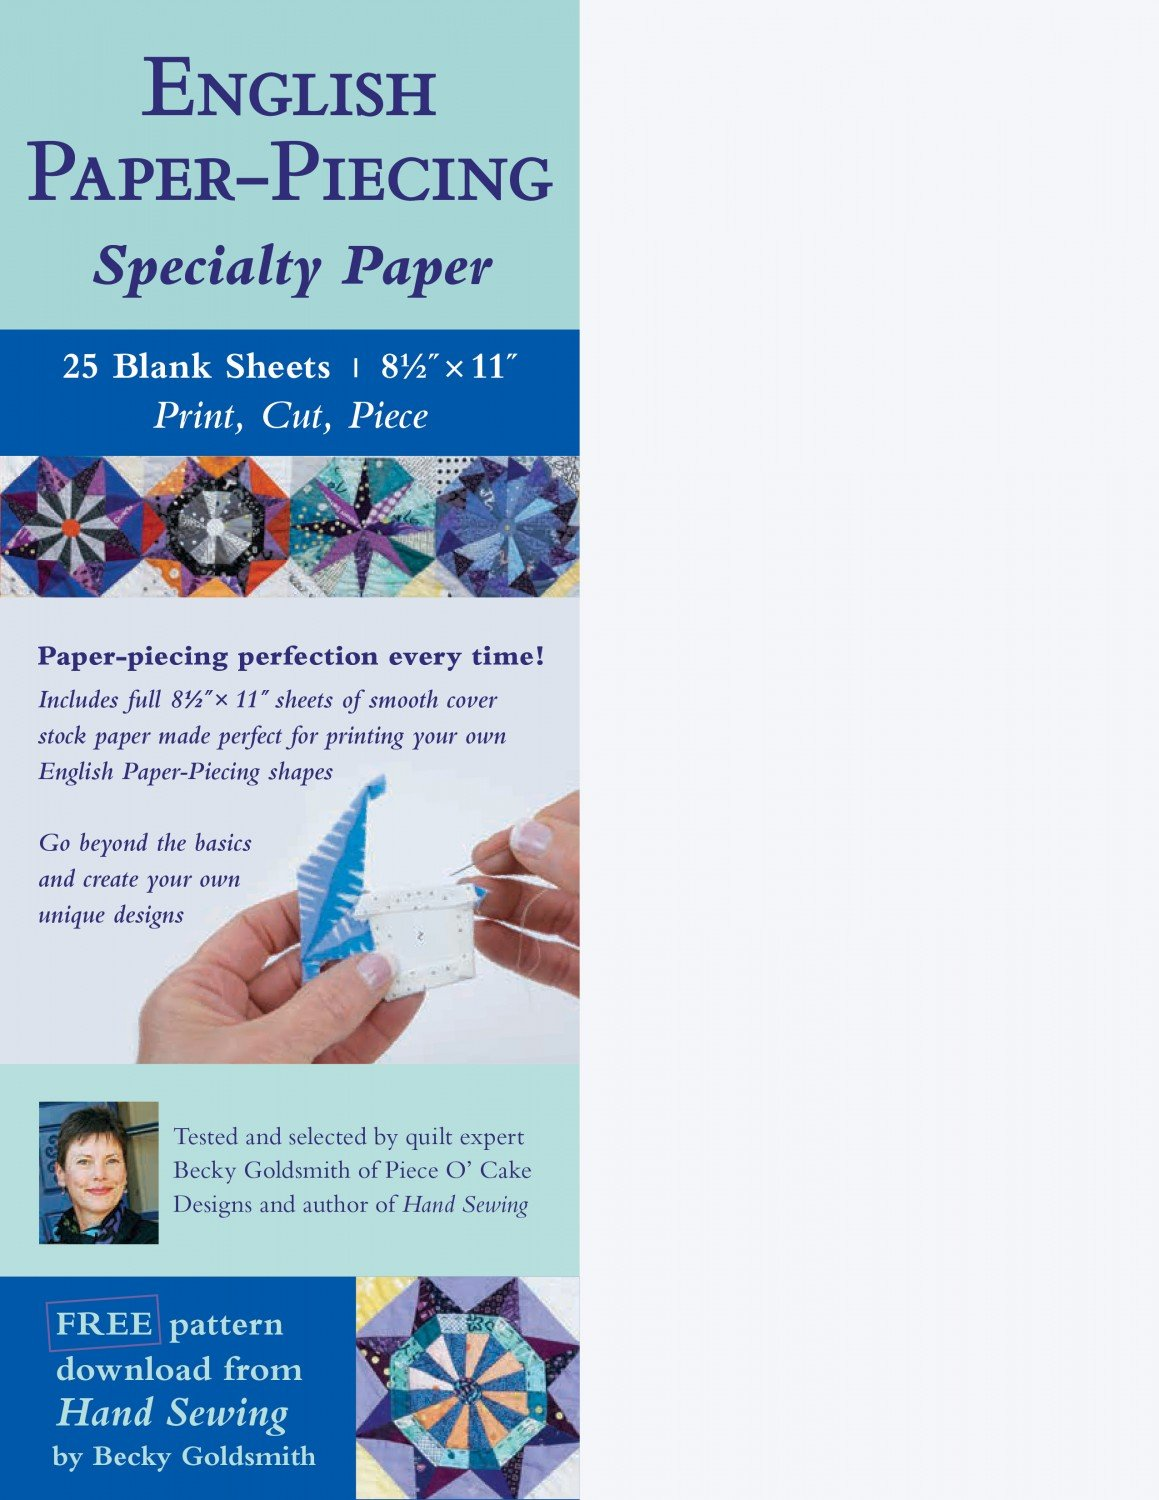 English Paper-Piecing Specialty Paper